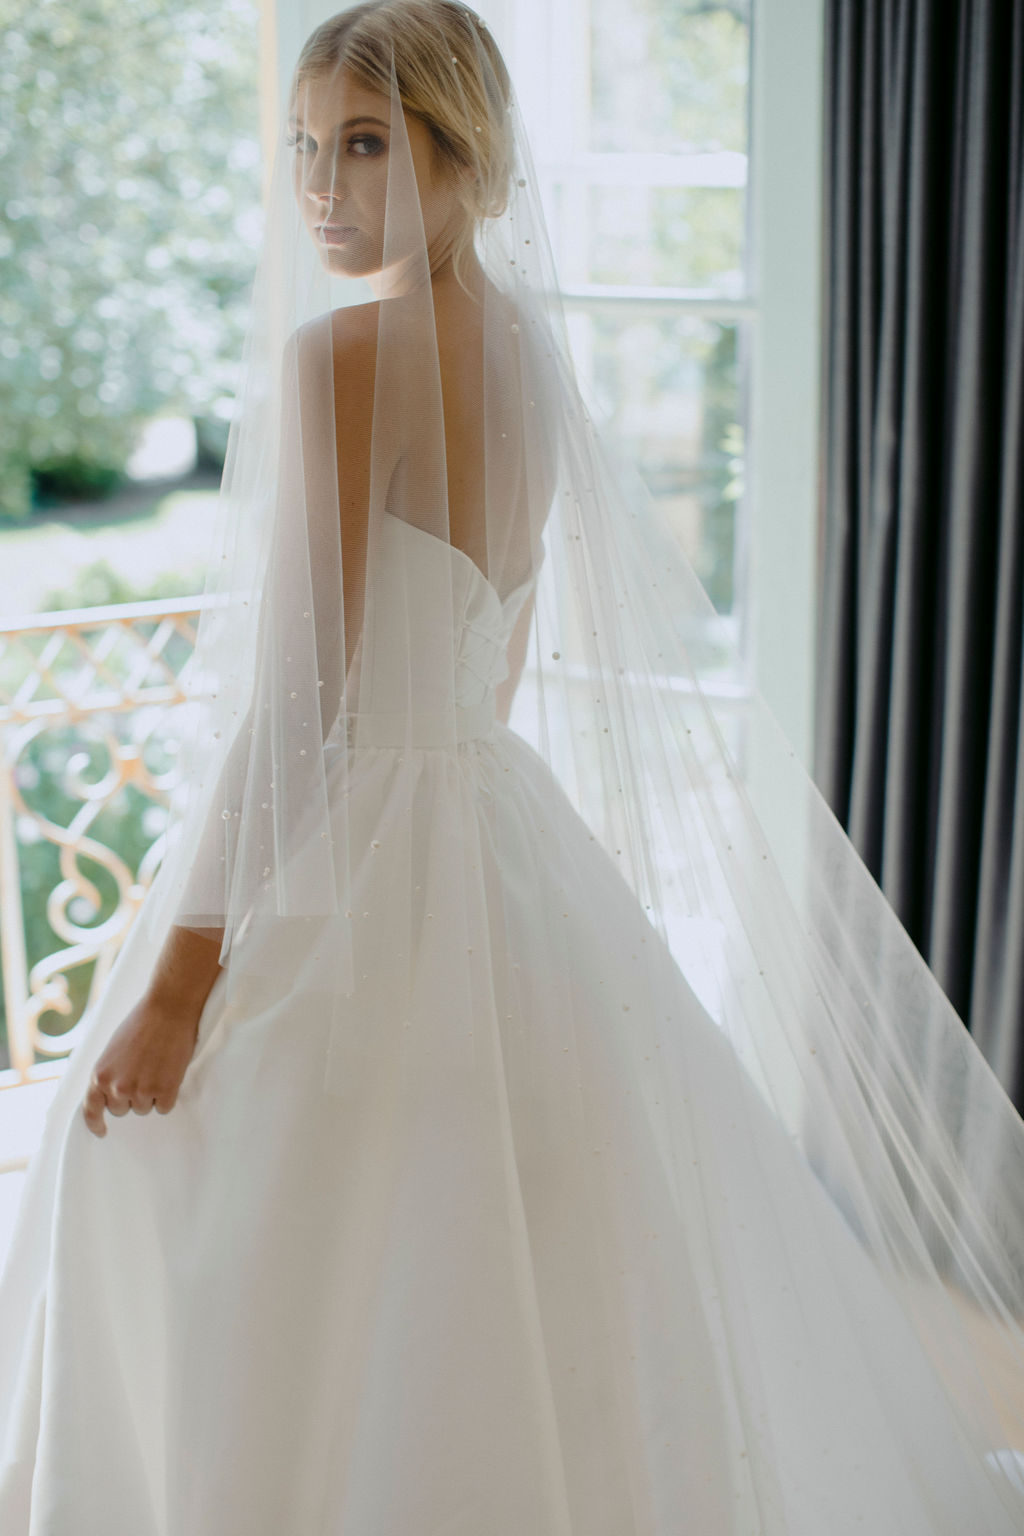 NADIA LONG PEARL BRIDAL VEIL by TANIA MARAS featured on LOVE FIND CO.